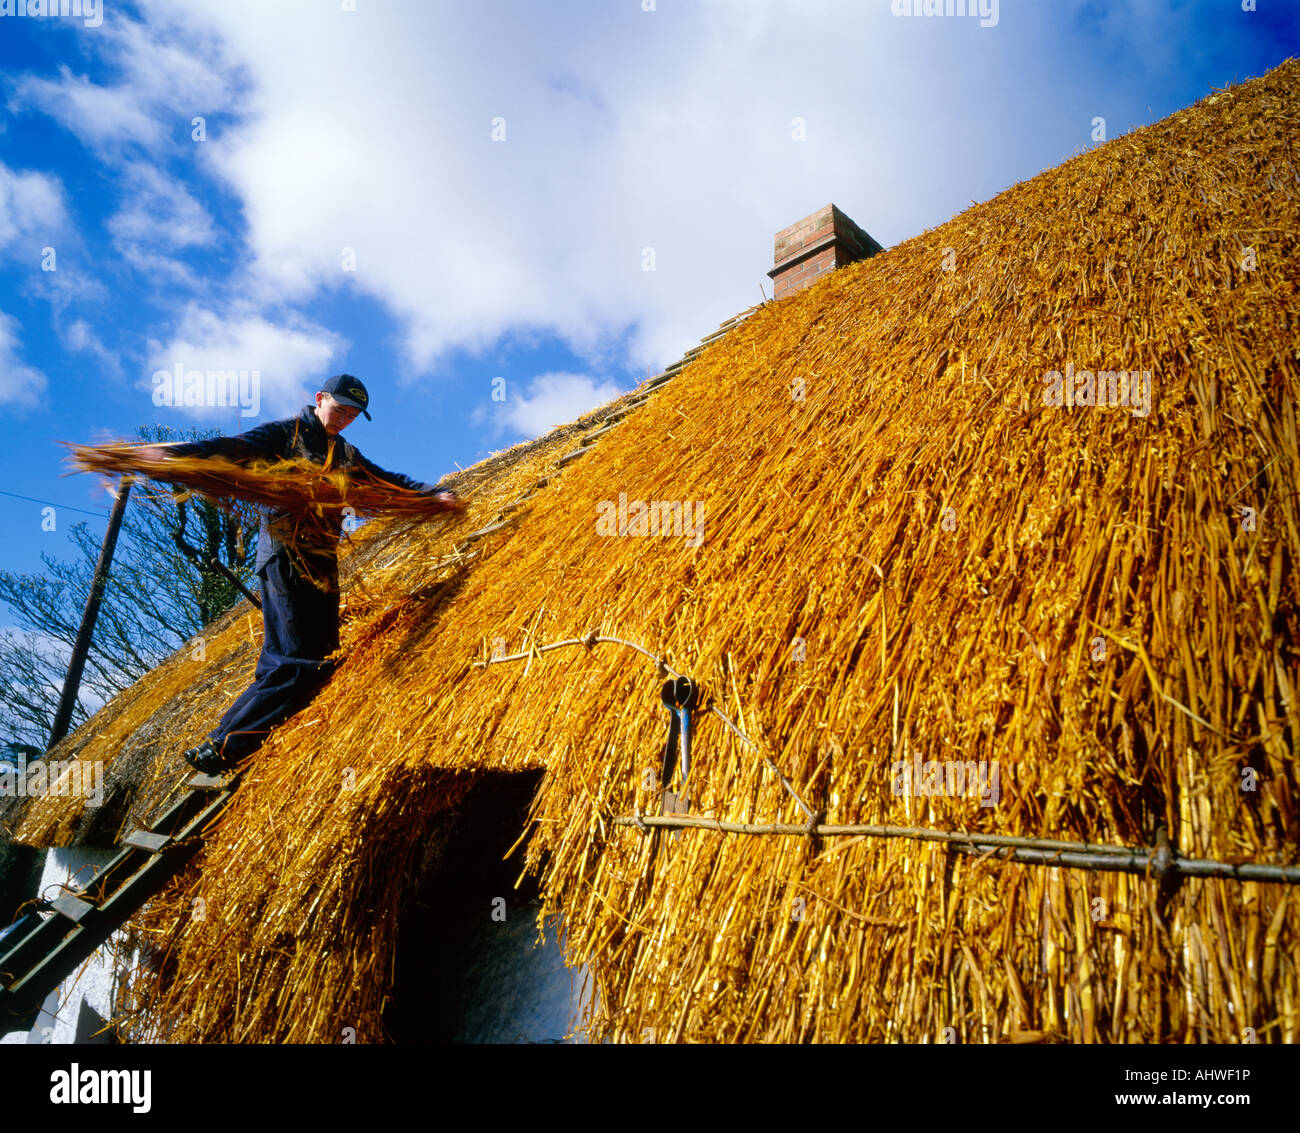 thatchers at work - Stock Image